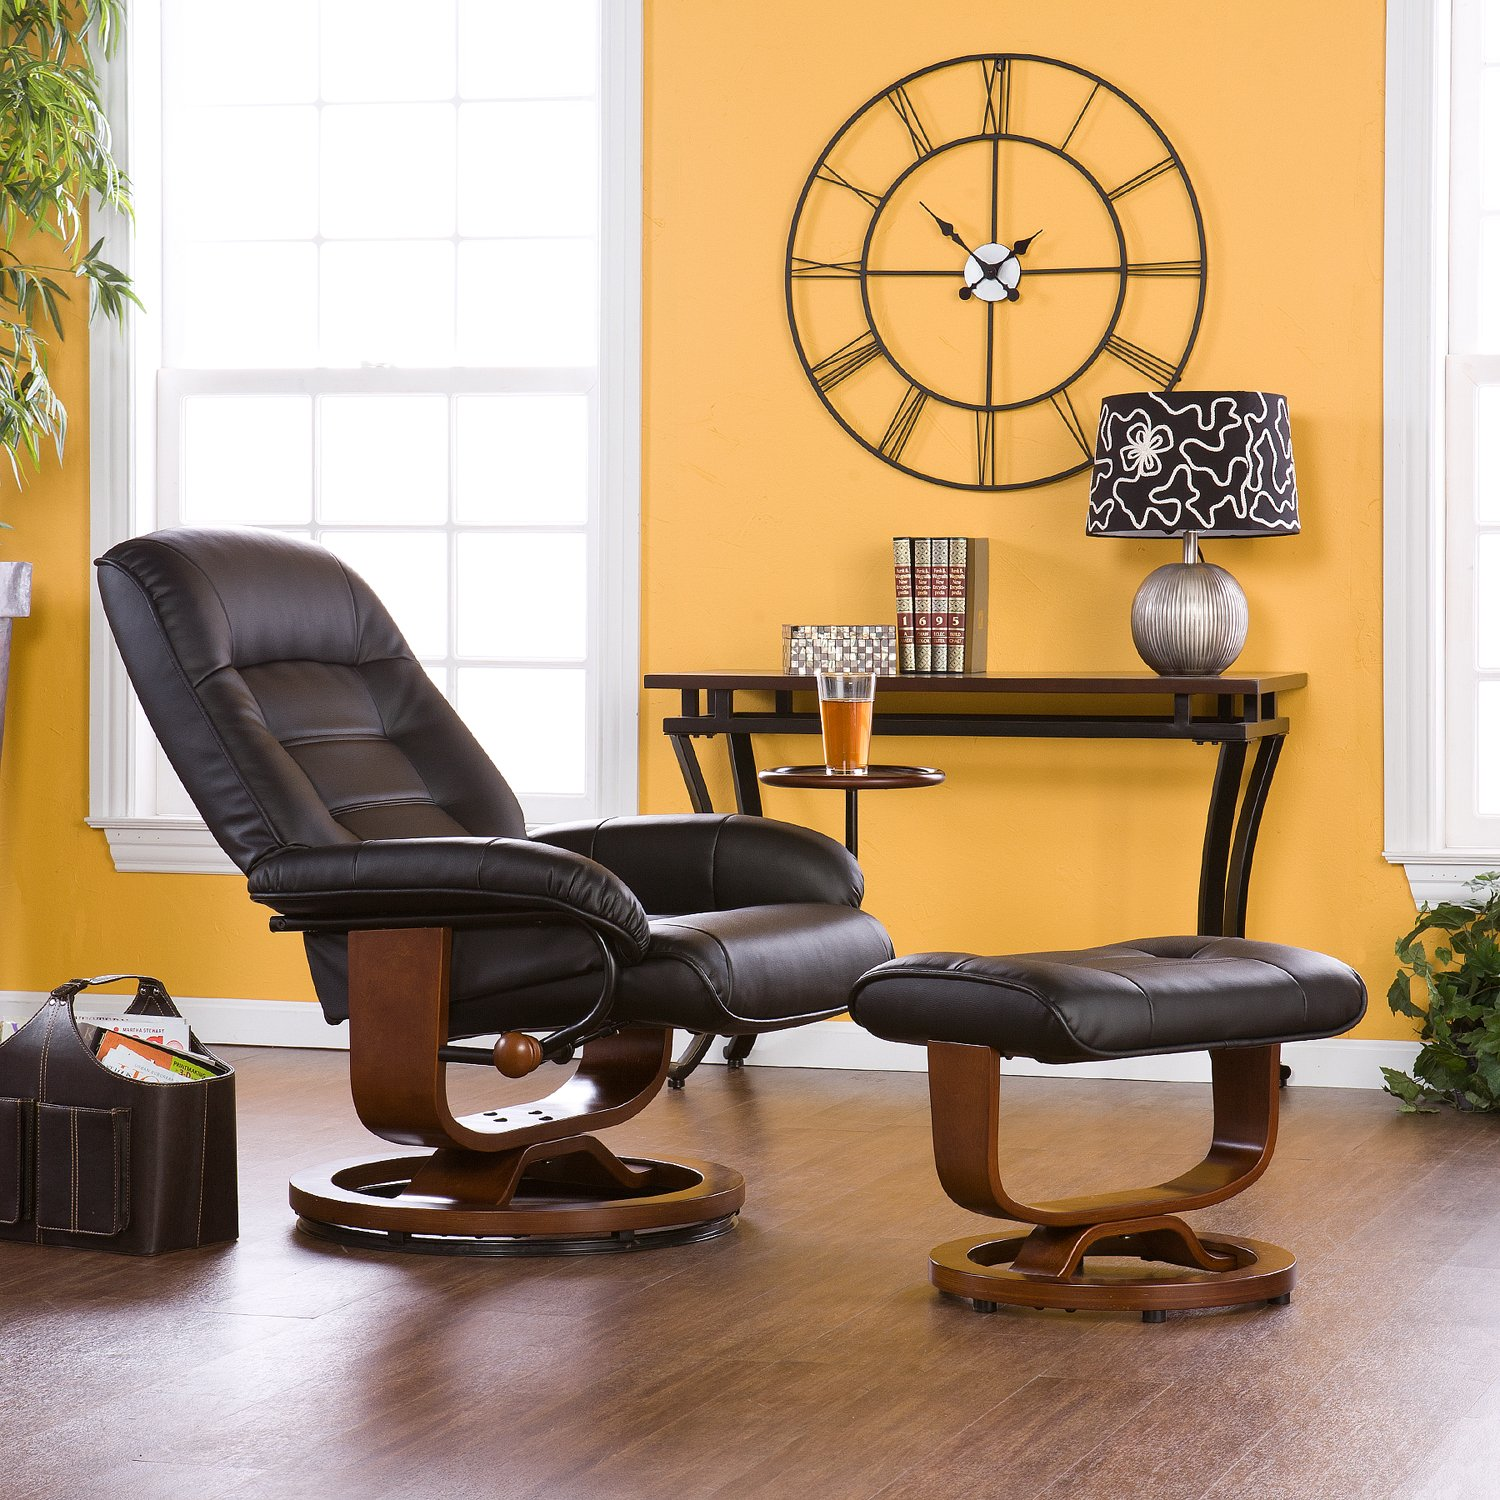 Amazon.com Adjustable Black Leather Recliner and Ottoman  Office Chair Kitchen u0026 Dining & Amazon.com: Adjustable Black Leather Recliner and Ottoman  Office ... islam-shia.org